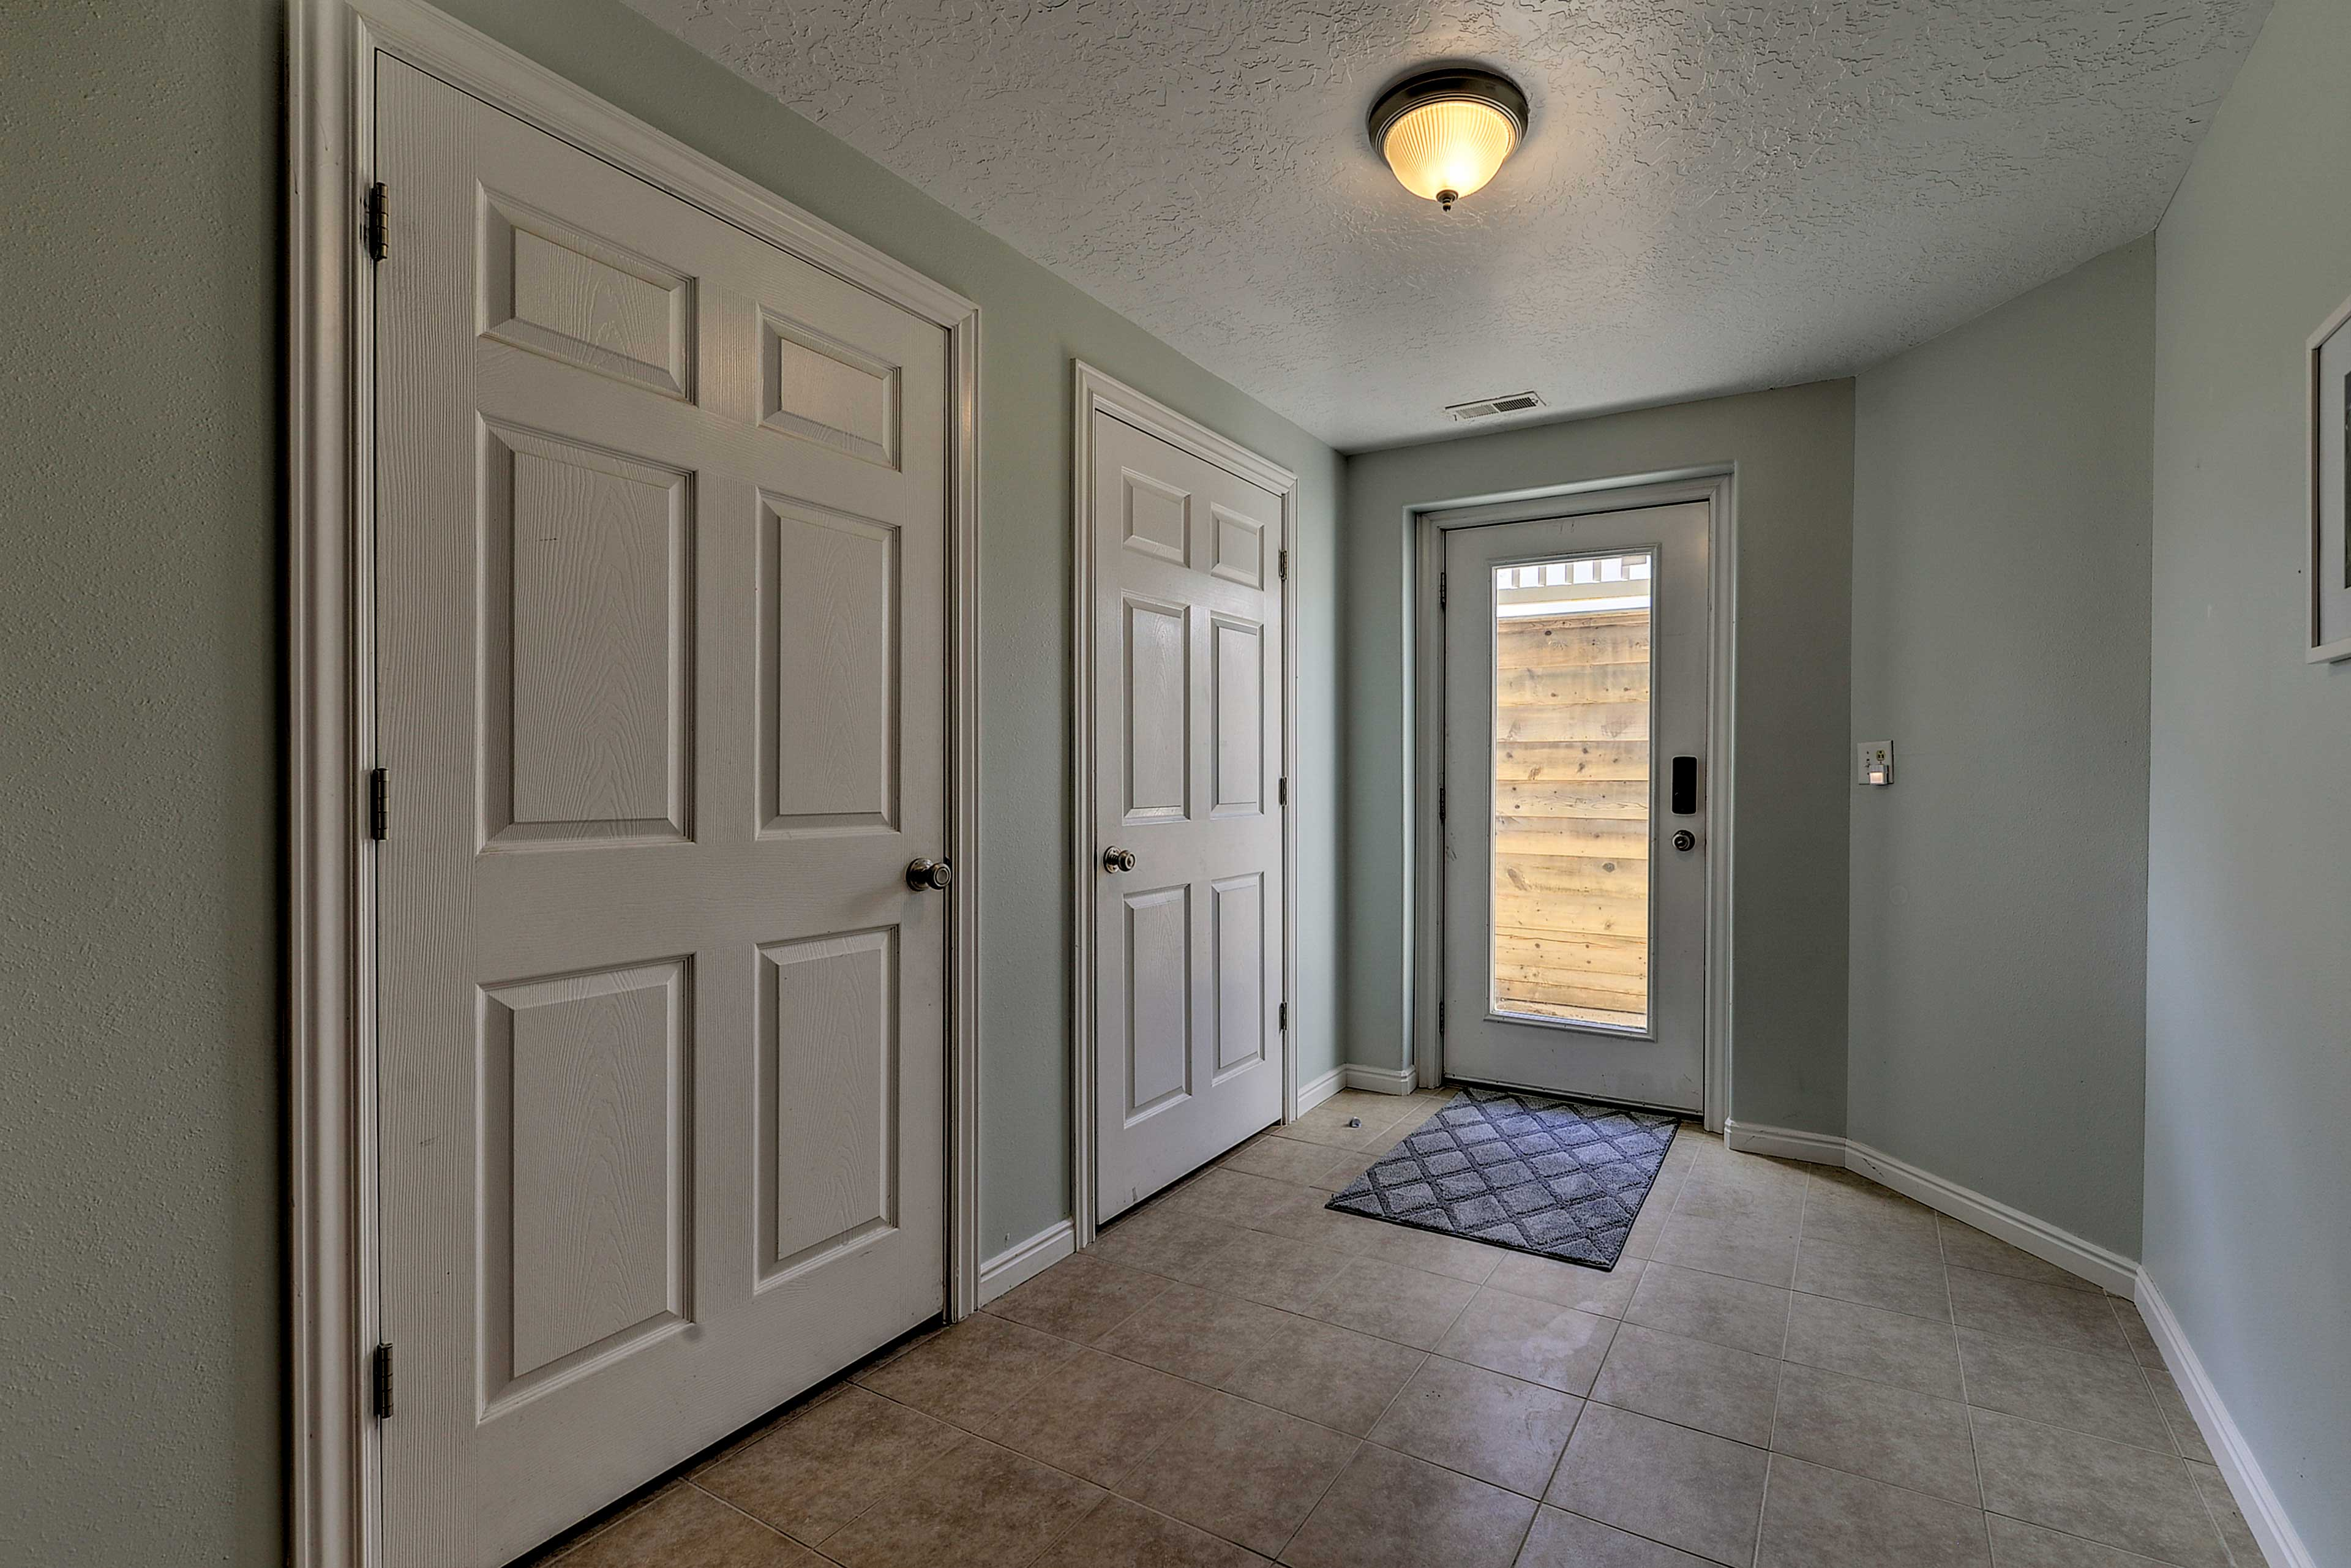 This unit is equipped with keyless entry as well.